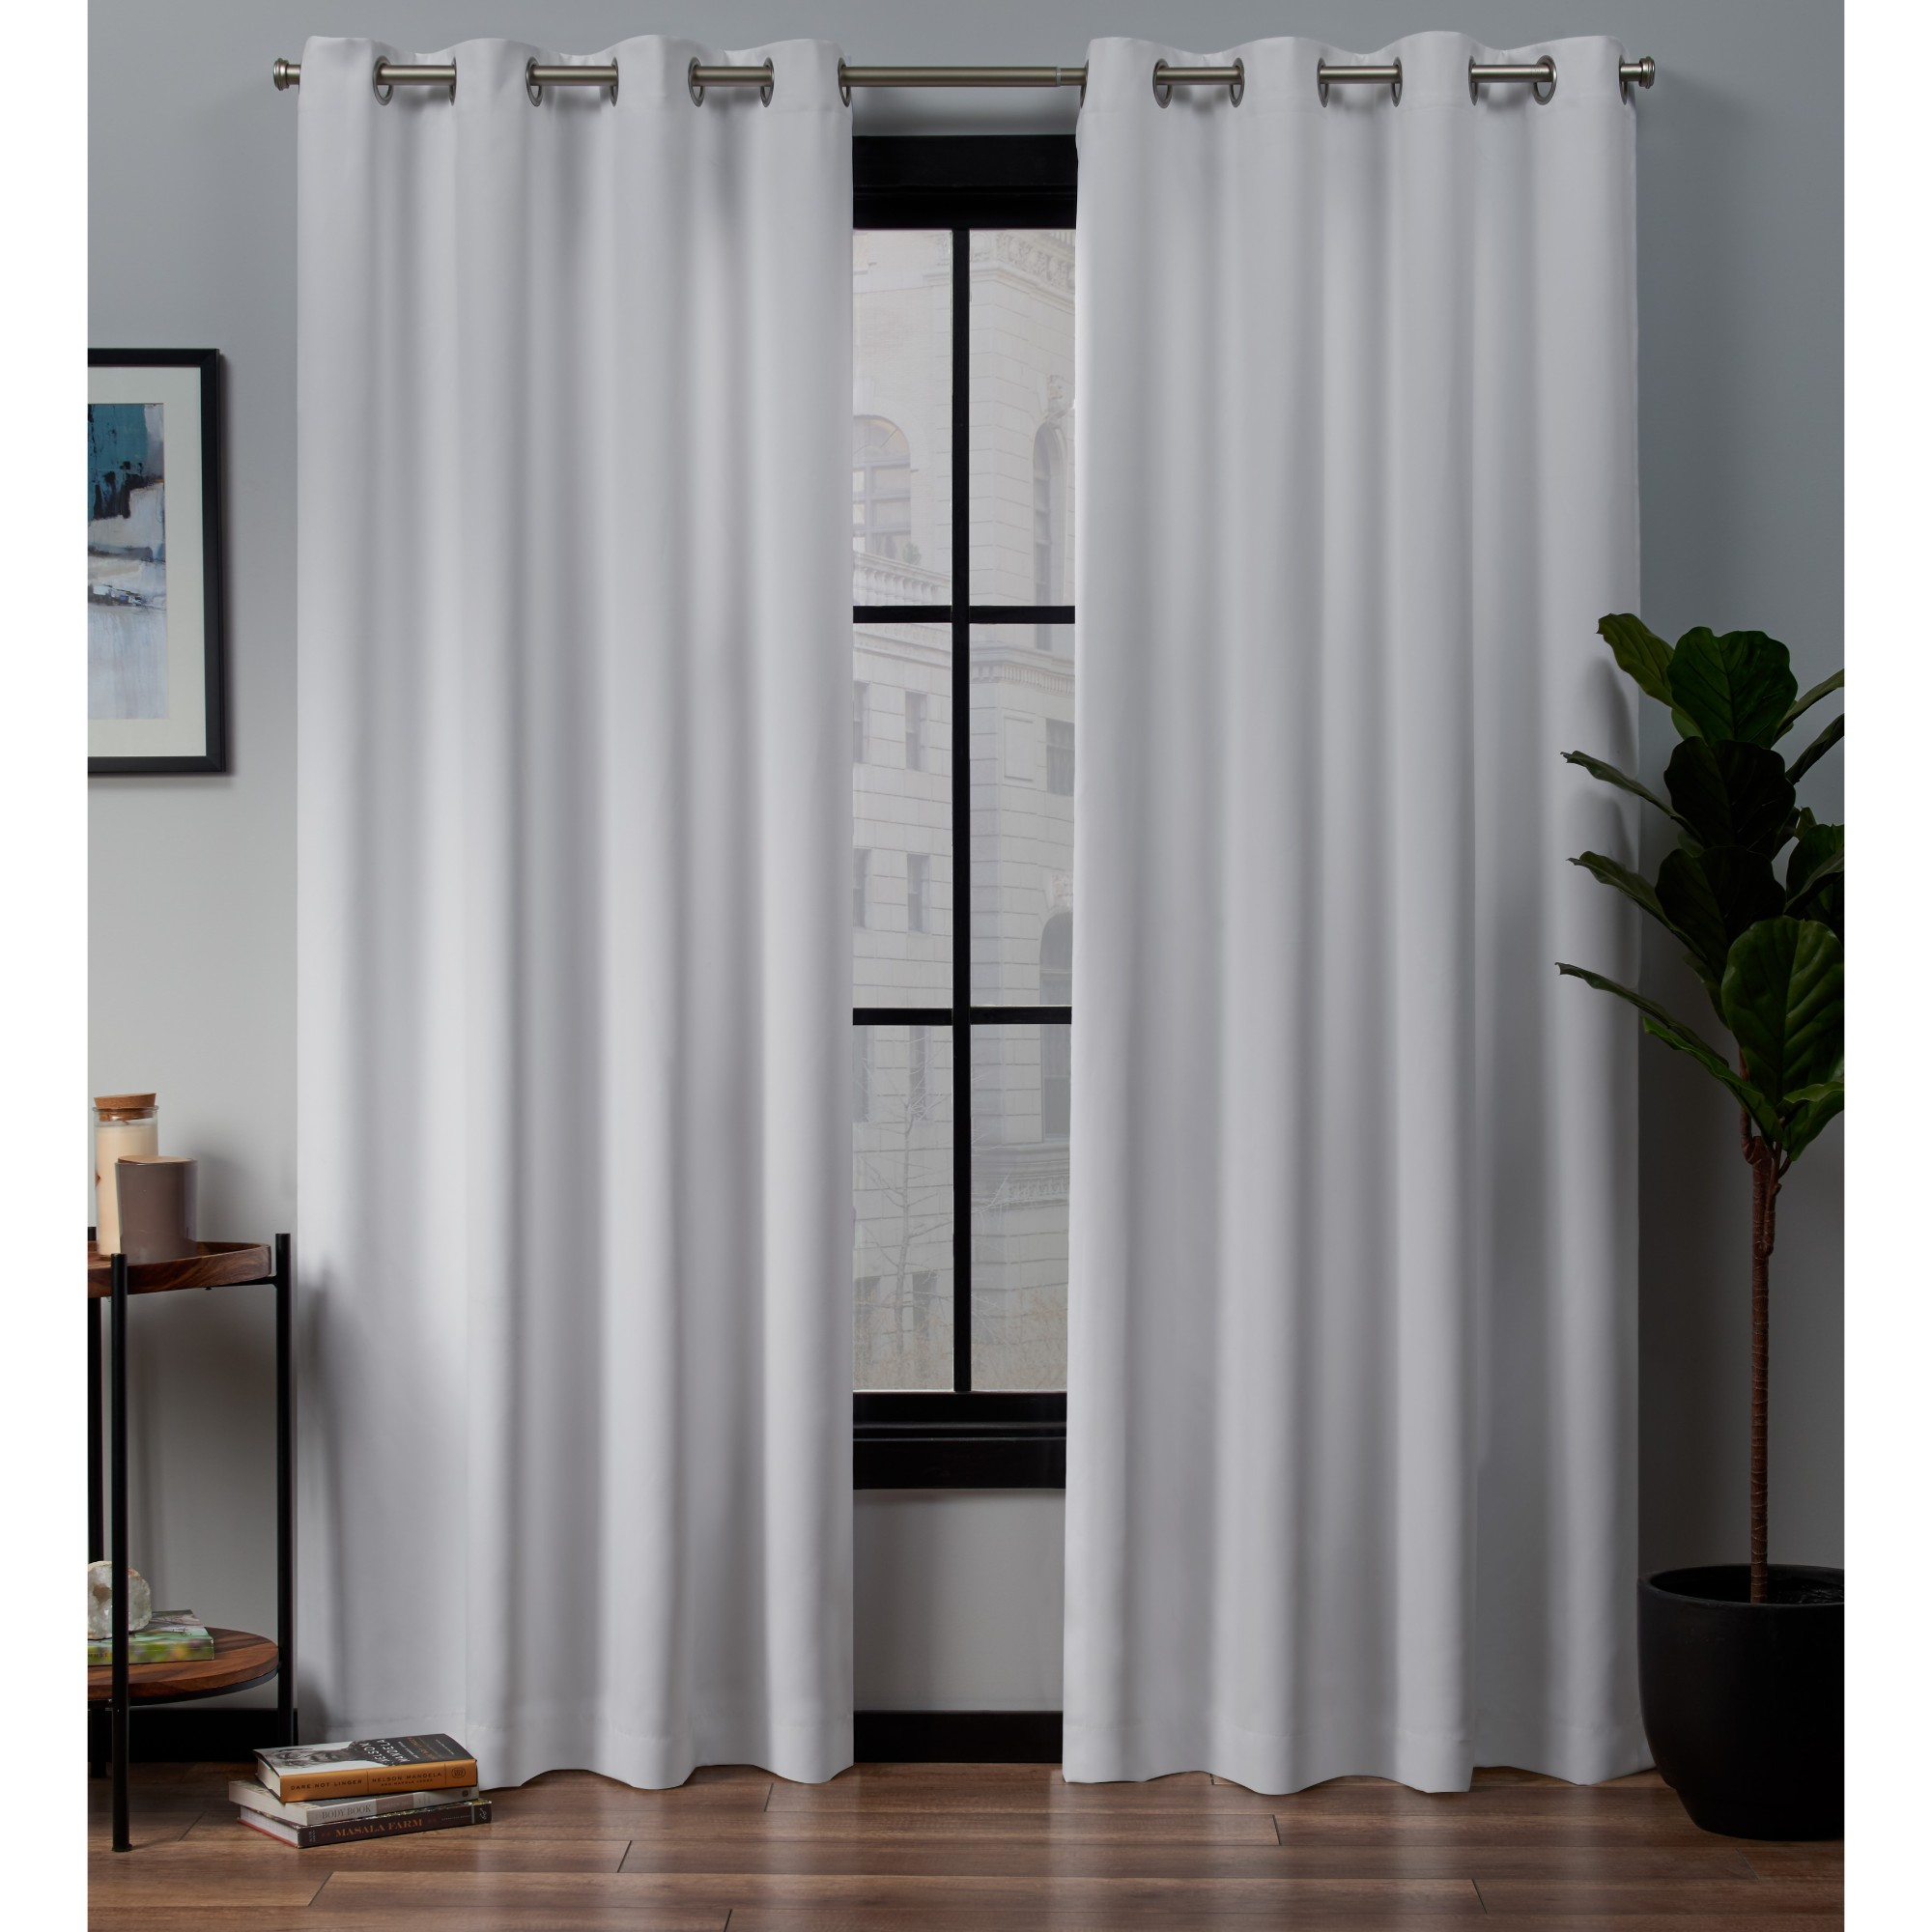 Total Blackout Curtains Grommet | Flisol Home Within Sunsmart Abel Ogee Knitted Jacquard Total Blackout Curtain Panels (View 30 of 30)